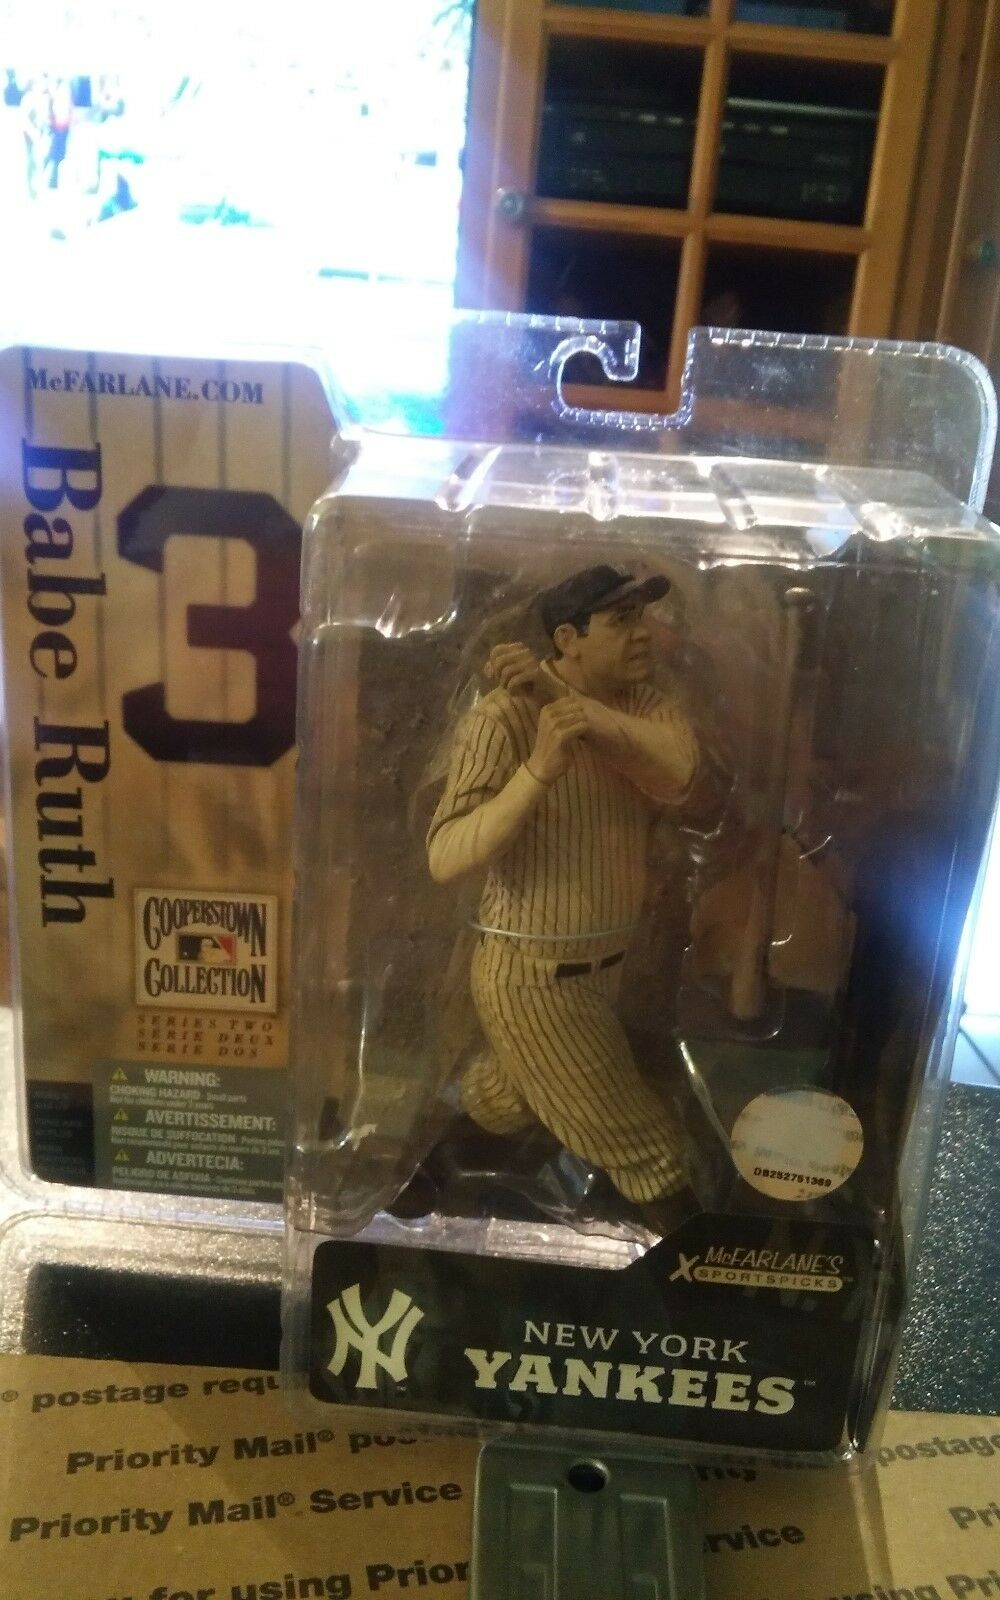 McFarlane Cooperstown Collection Series 2 Babe Ruth Yankees Sephia Chase Variant